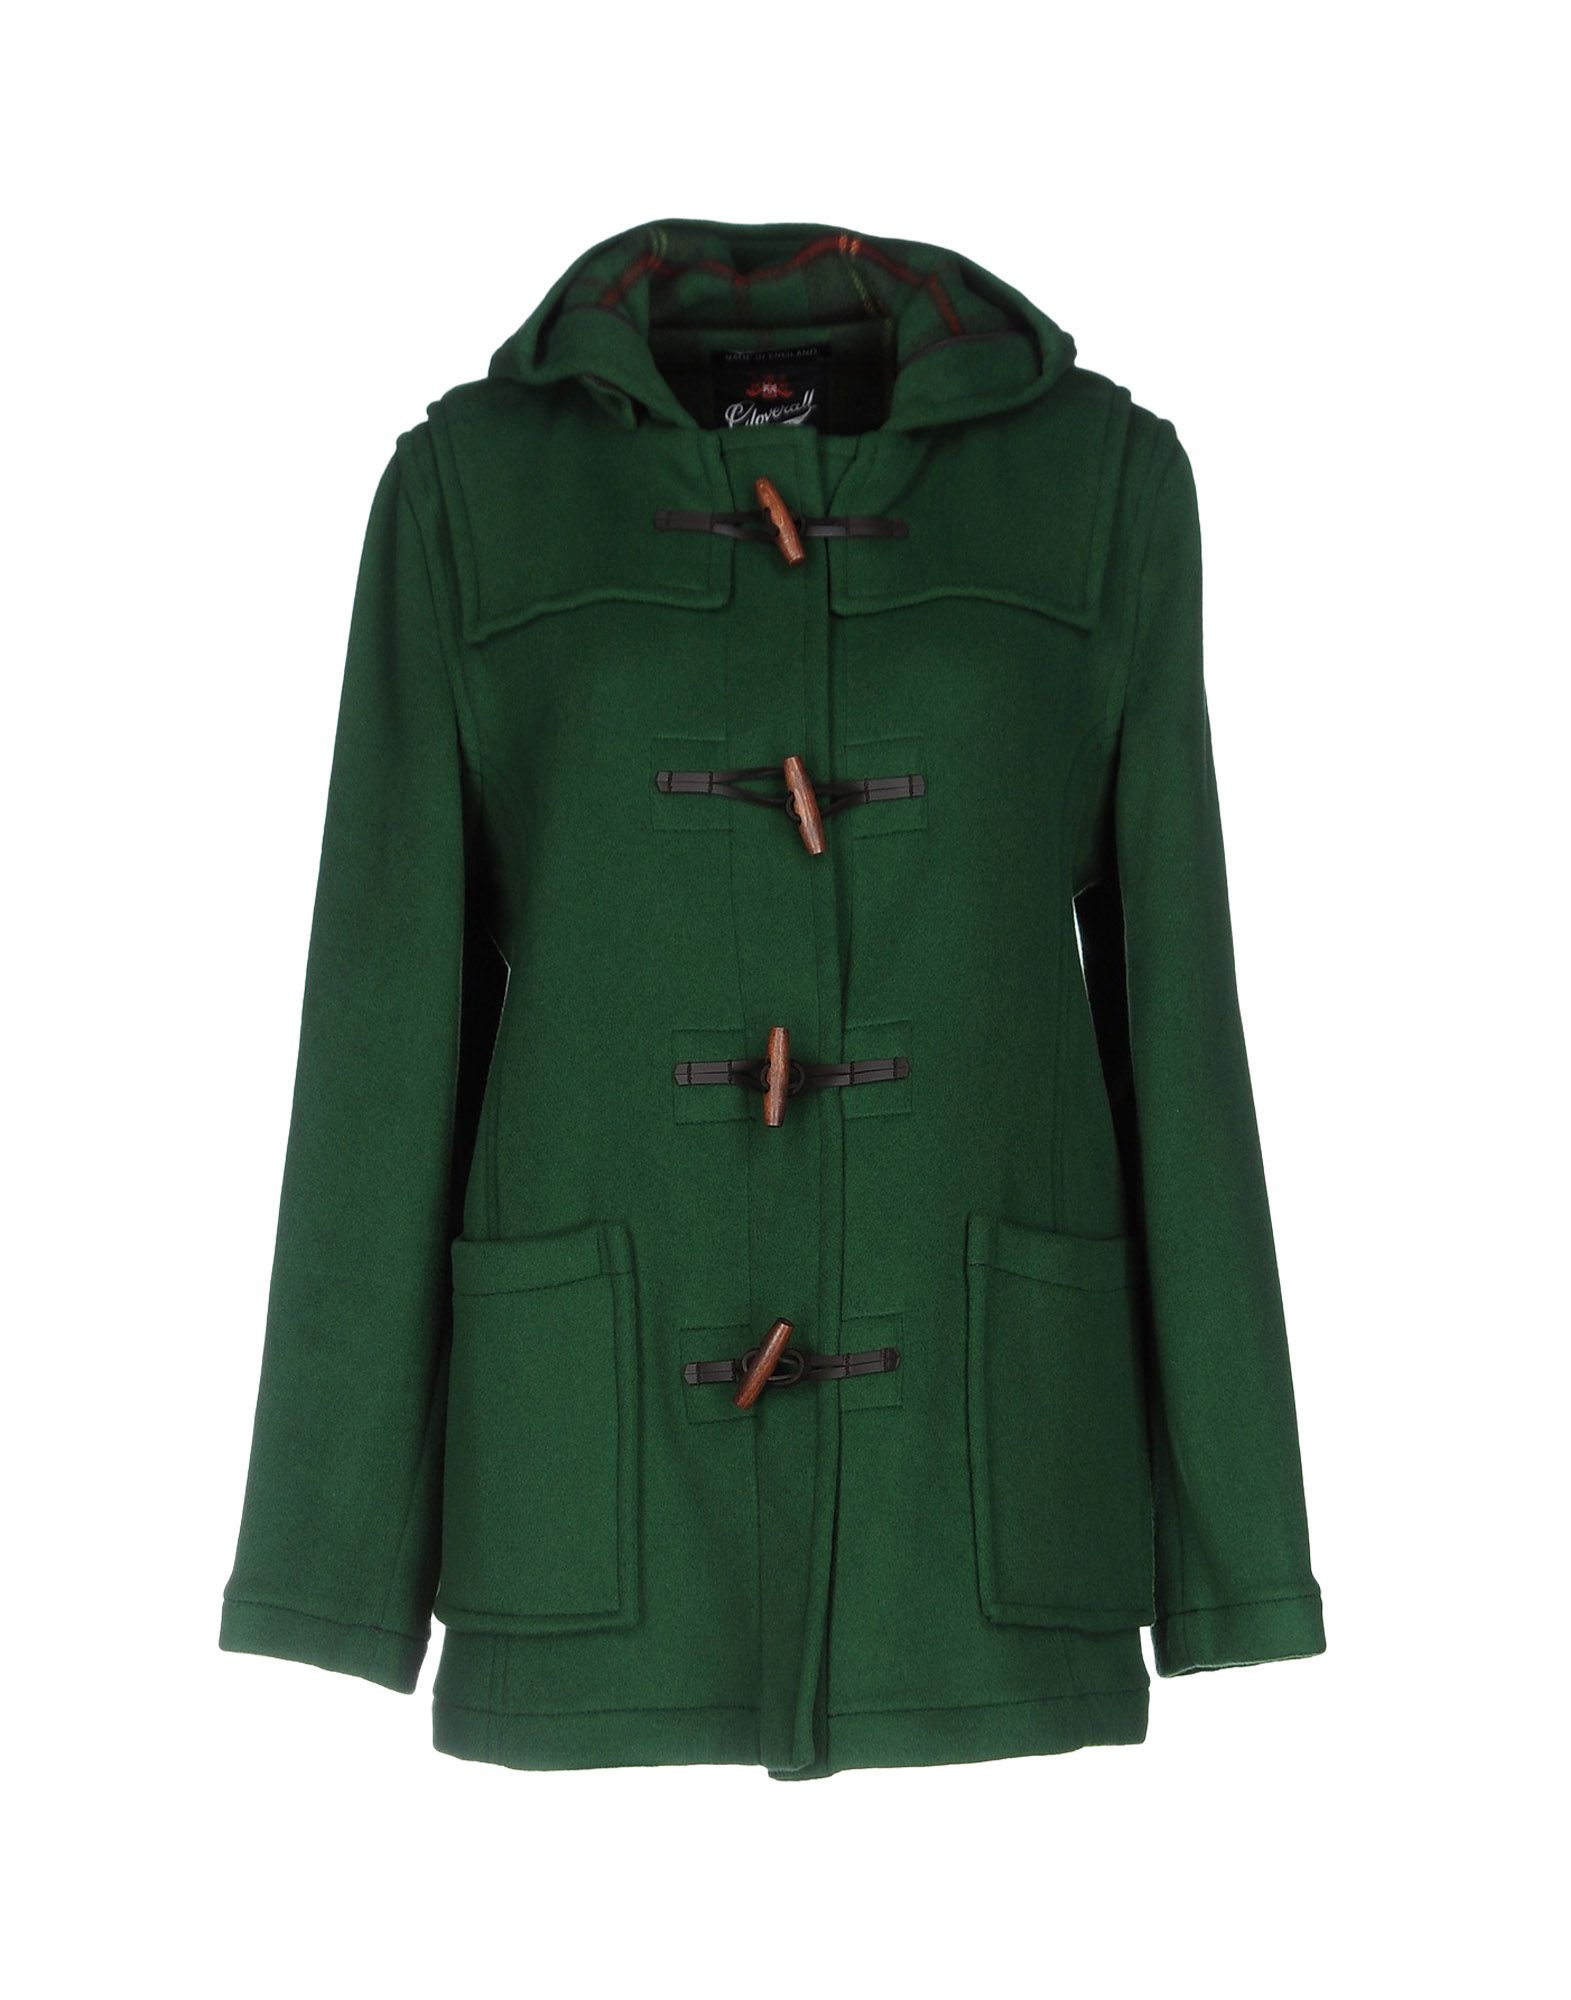 GLOVERALL Coat in Green